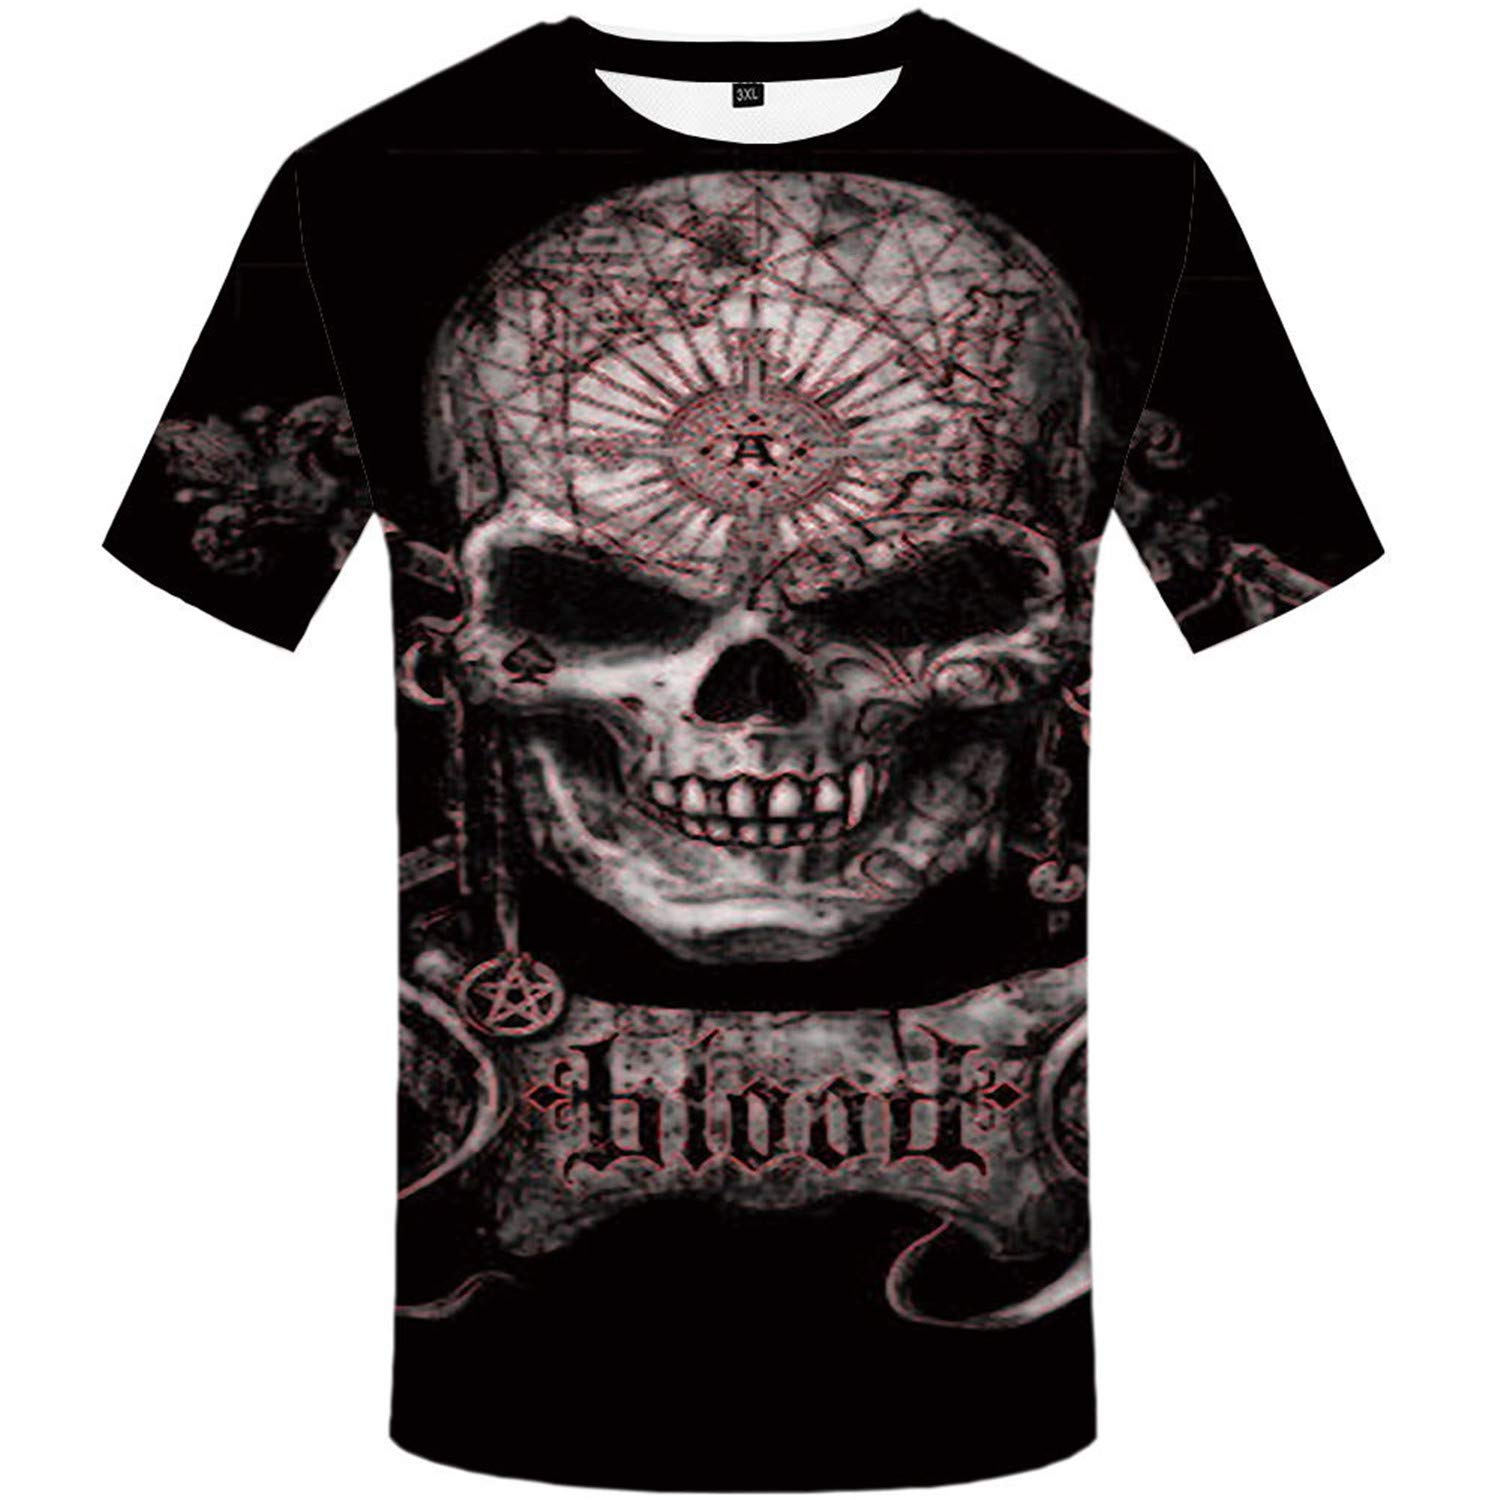 ffcc8c05 Amazon.com: Albina Collins Skull T Shirt Blood Clothes Funny Hip-Hop Tees  3D Tops Men Short Sleeve Fashion Homme: Clothing